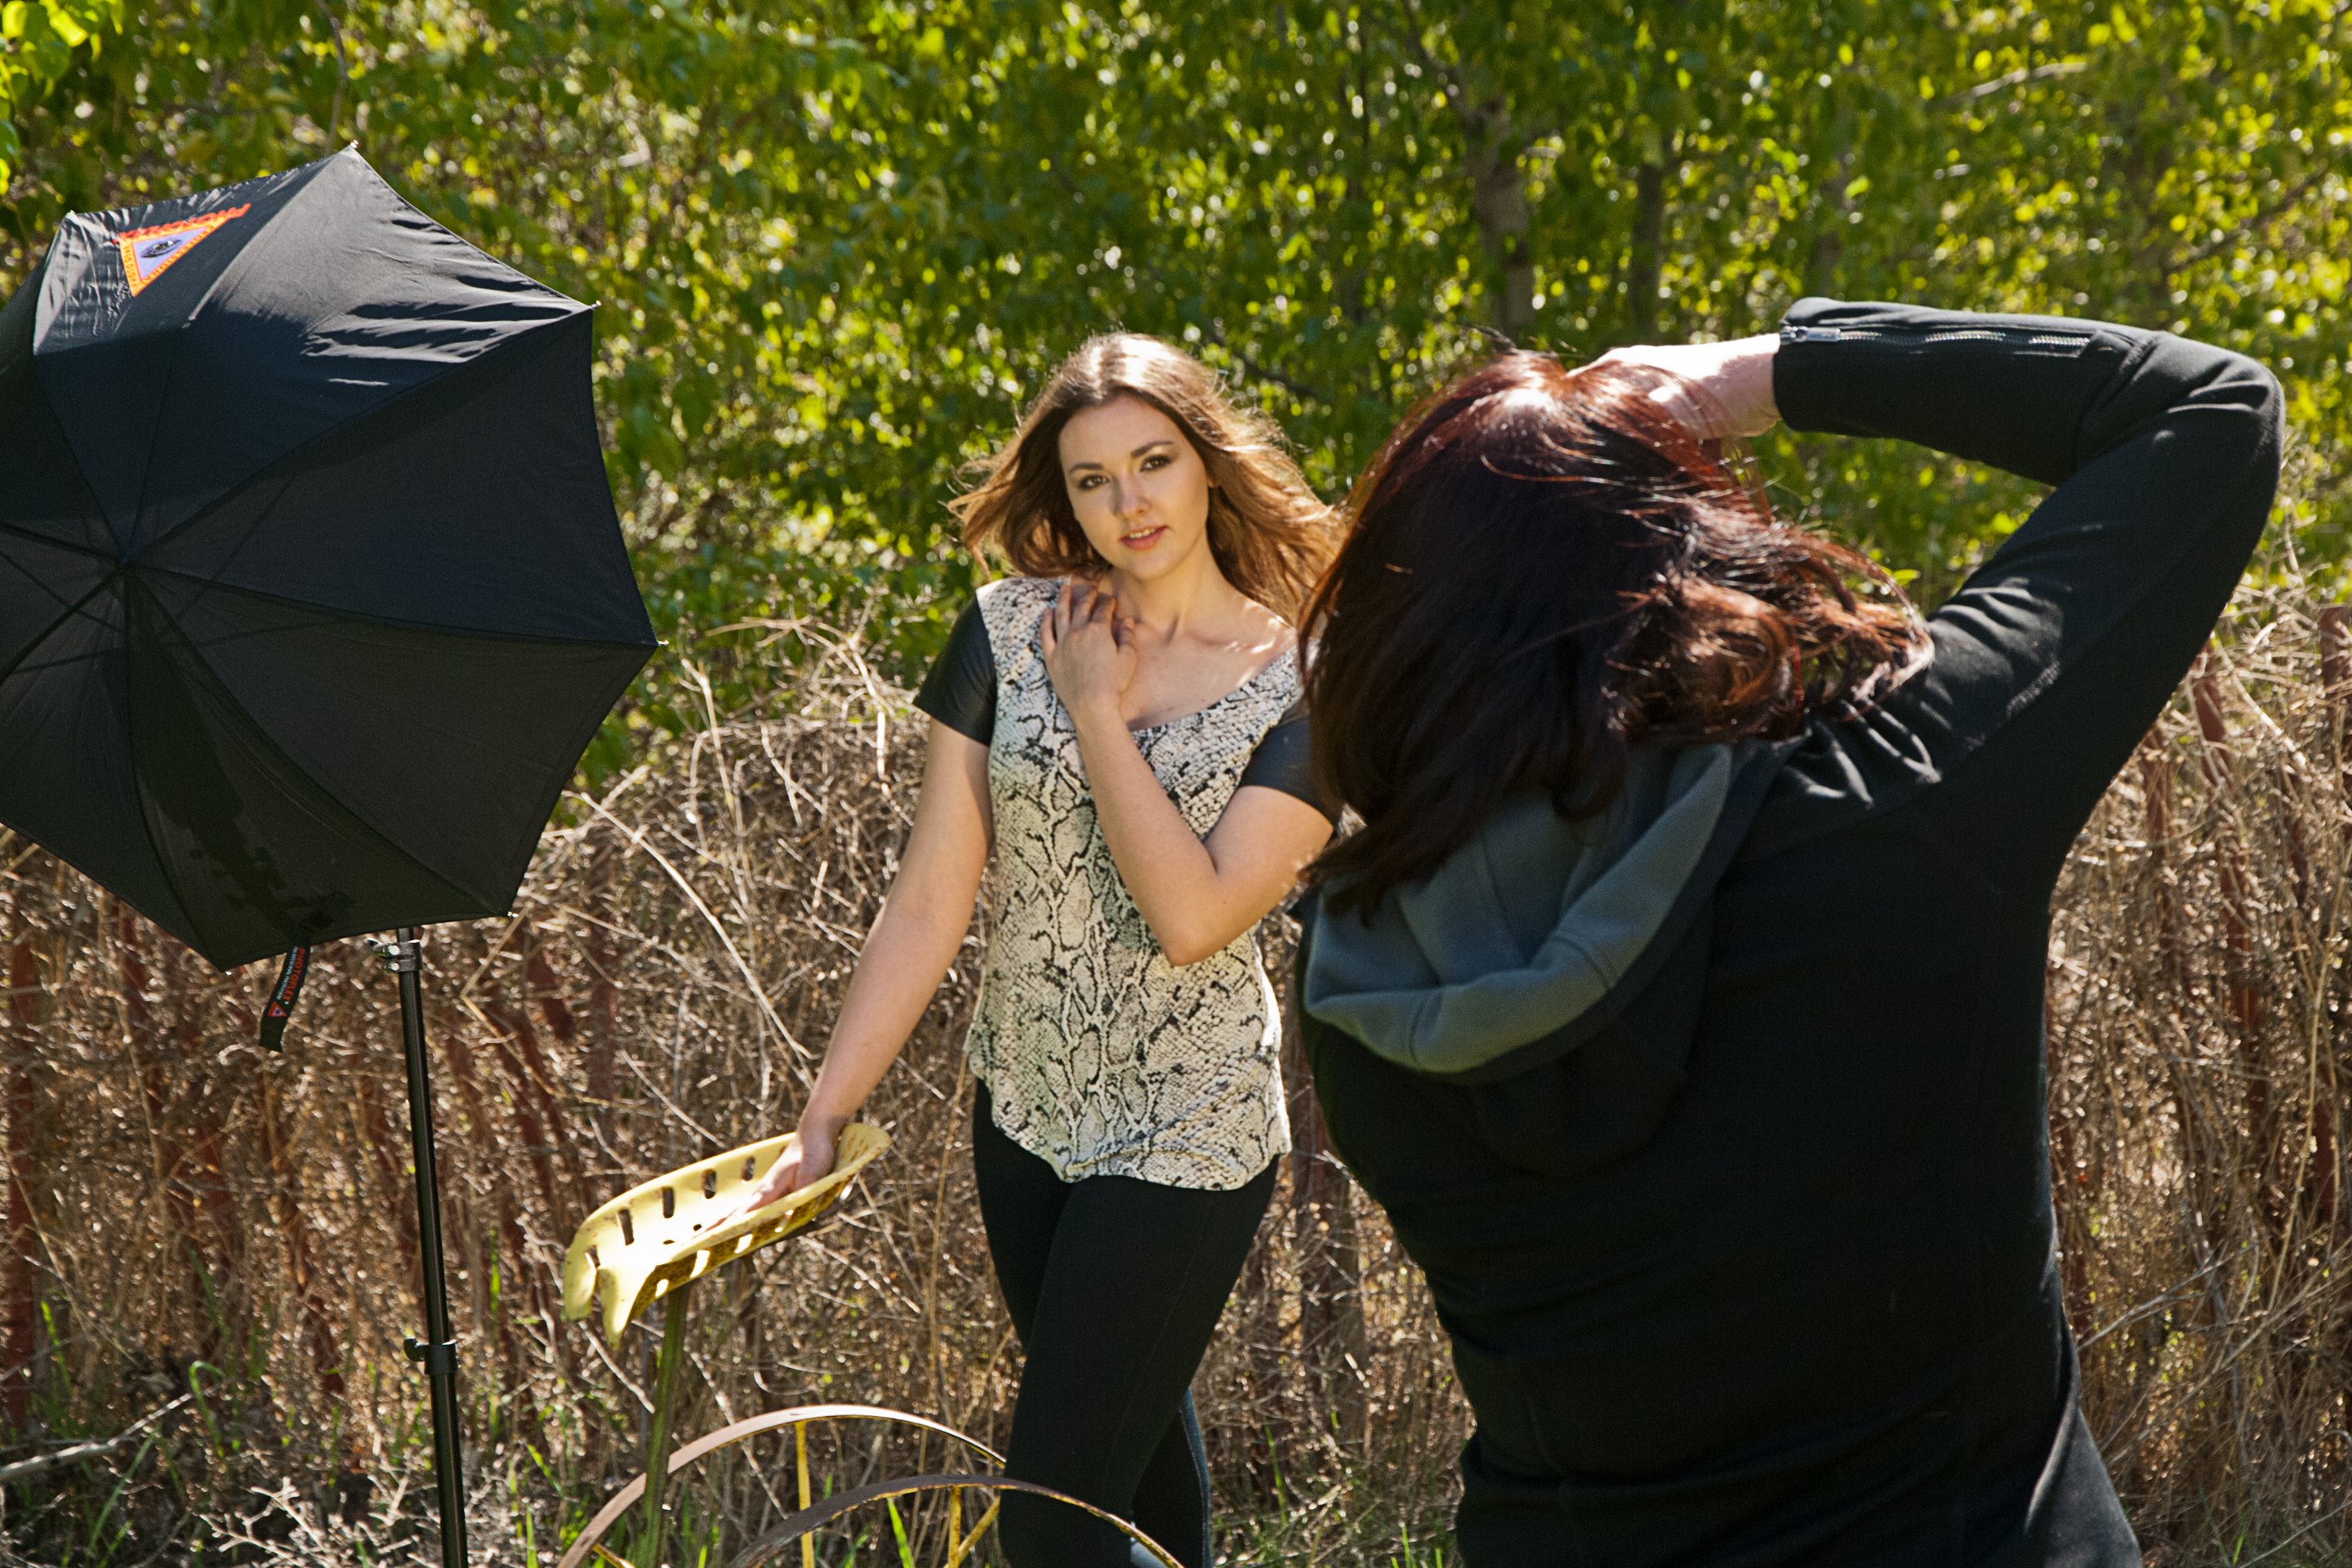 One more outdoor lighting workshop enmanscameras blog kamloops d outdoor shooting workwithnaturefo